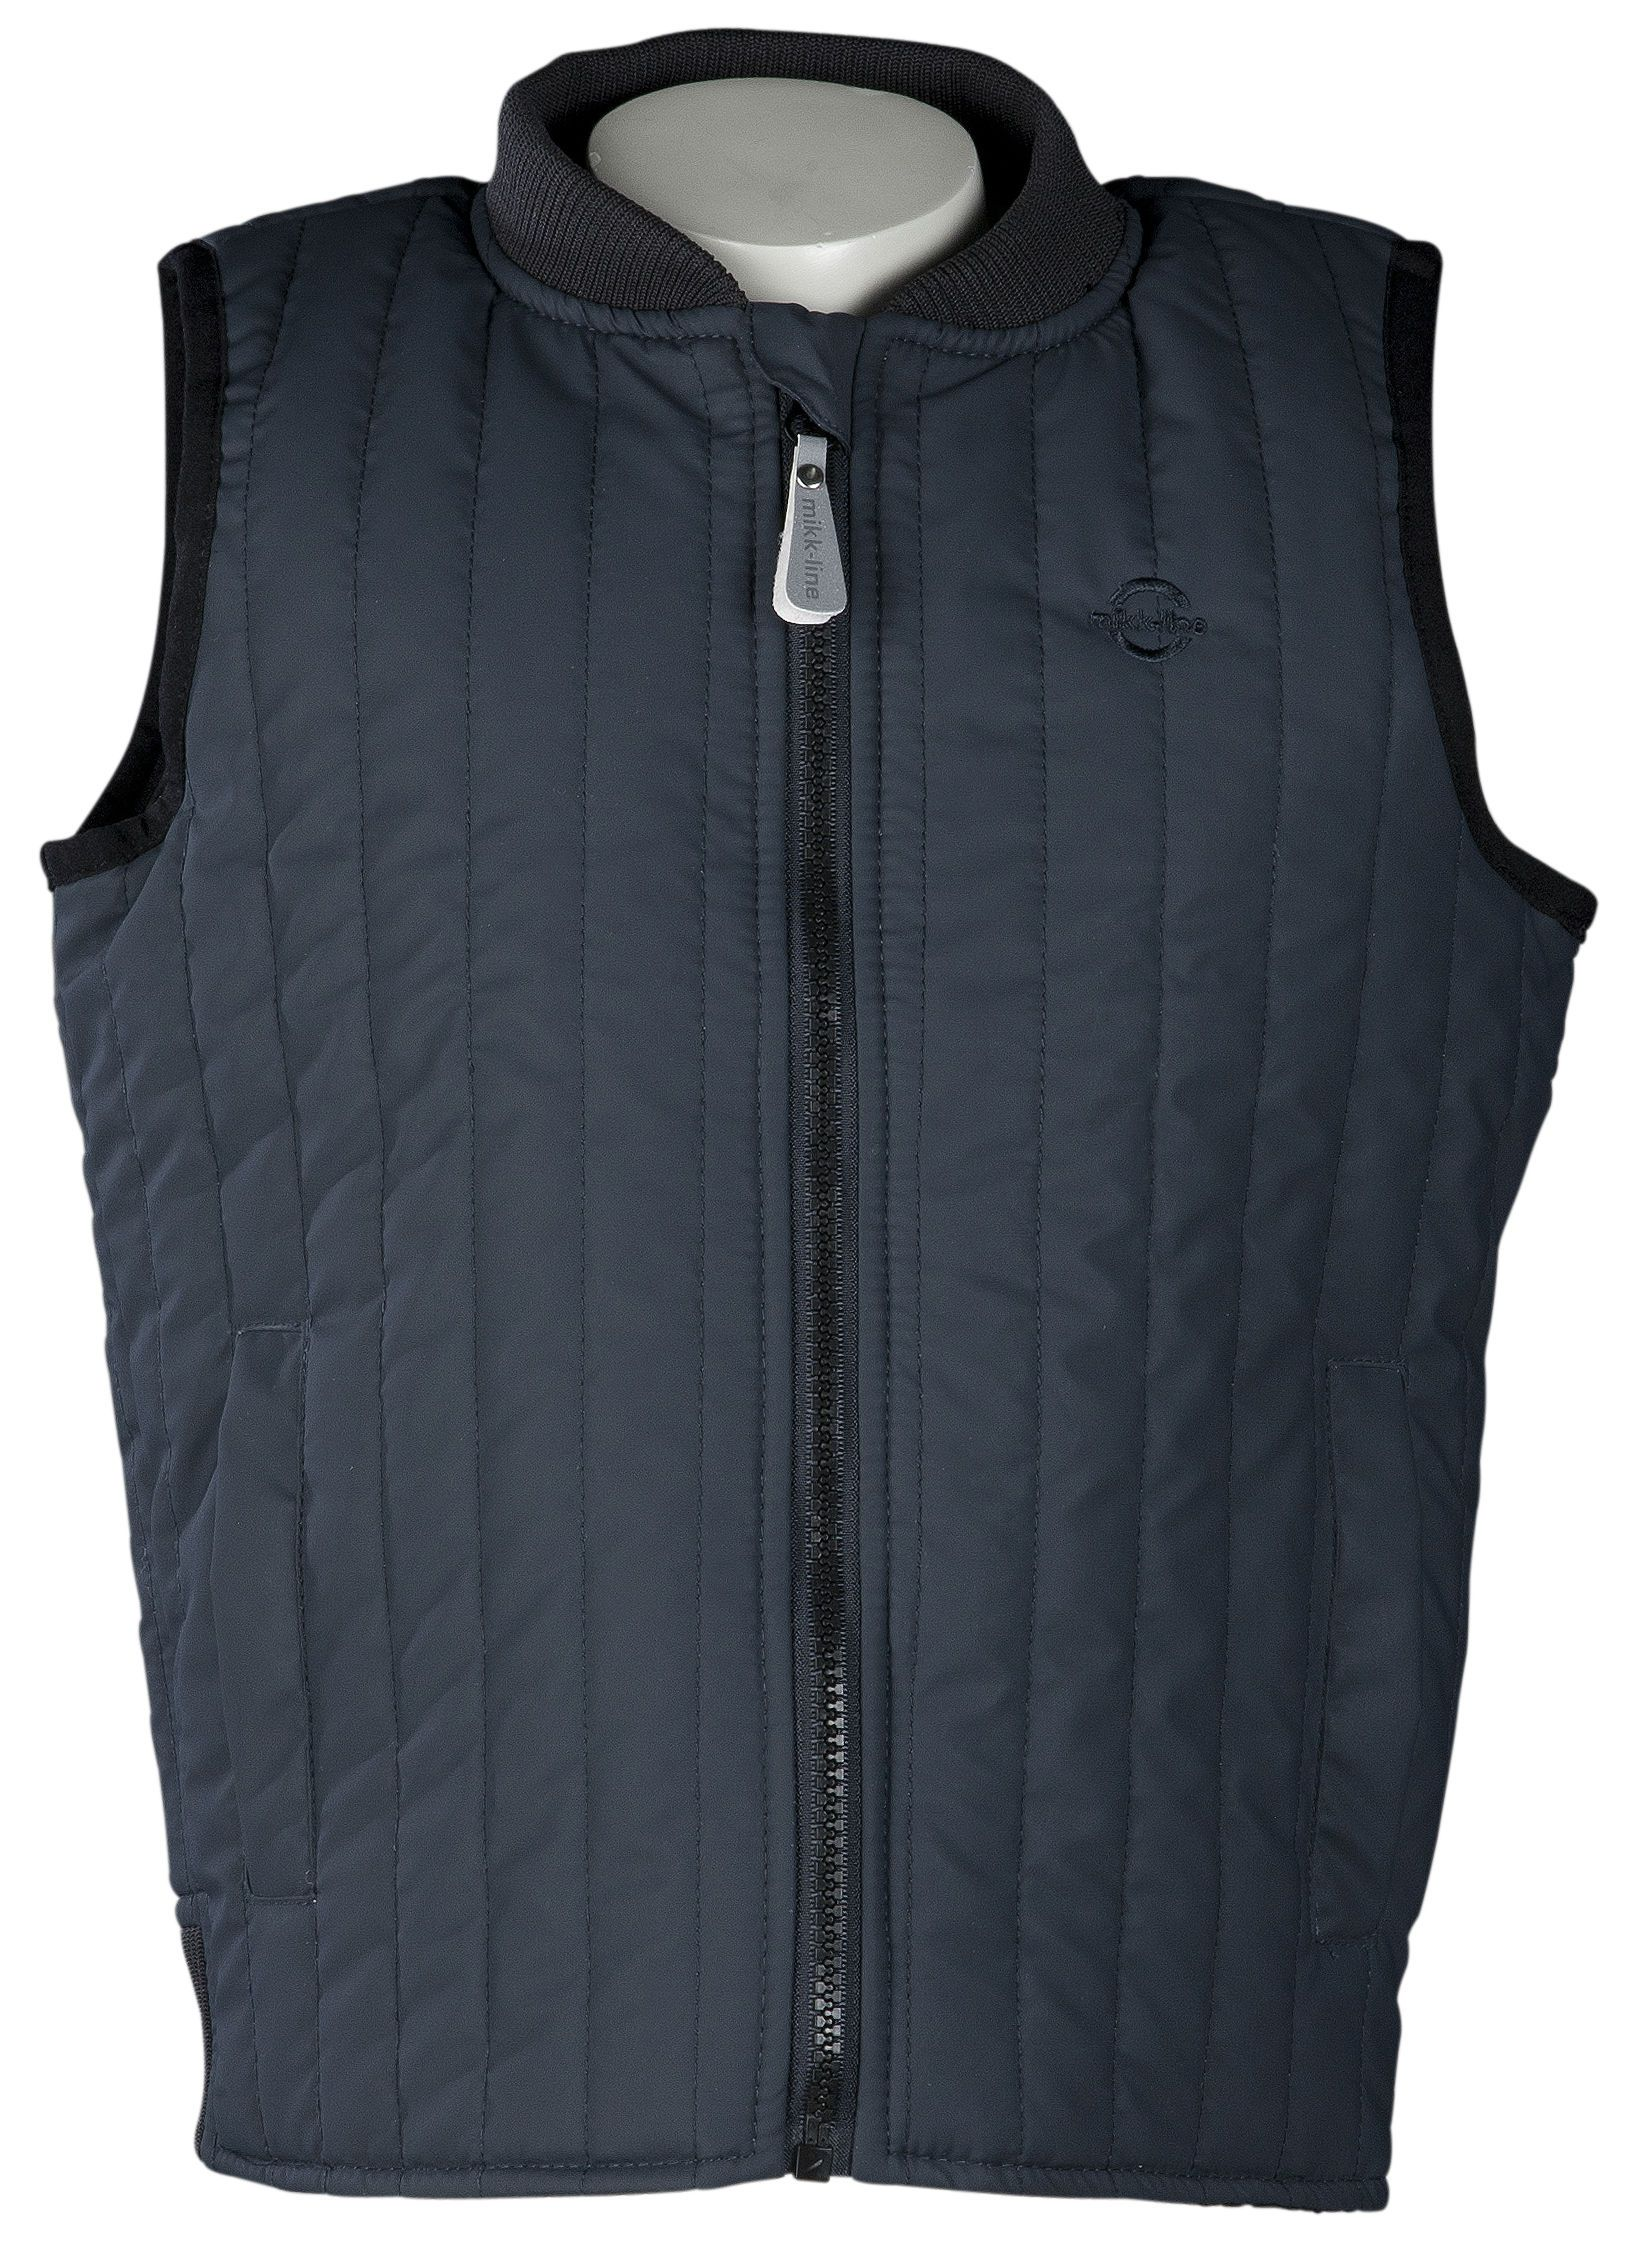 Image of Duvet termo vest fra Mikk-Line - Midnight Blue (16731-287)